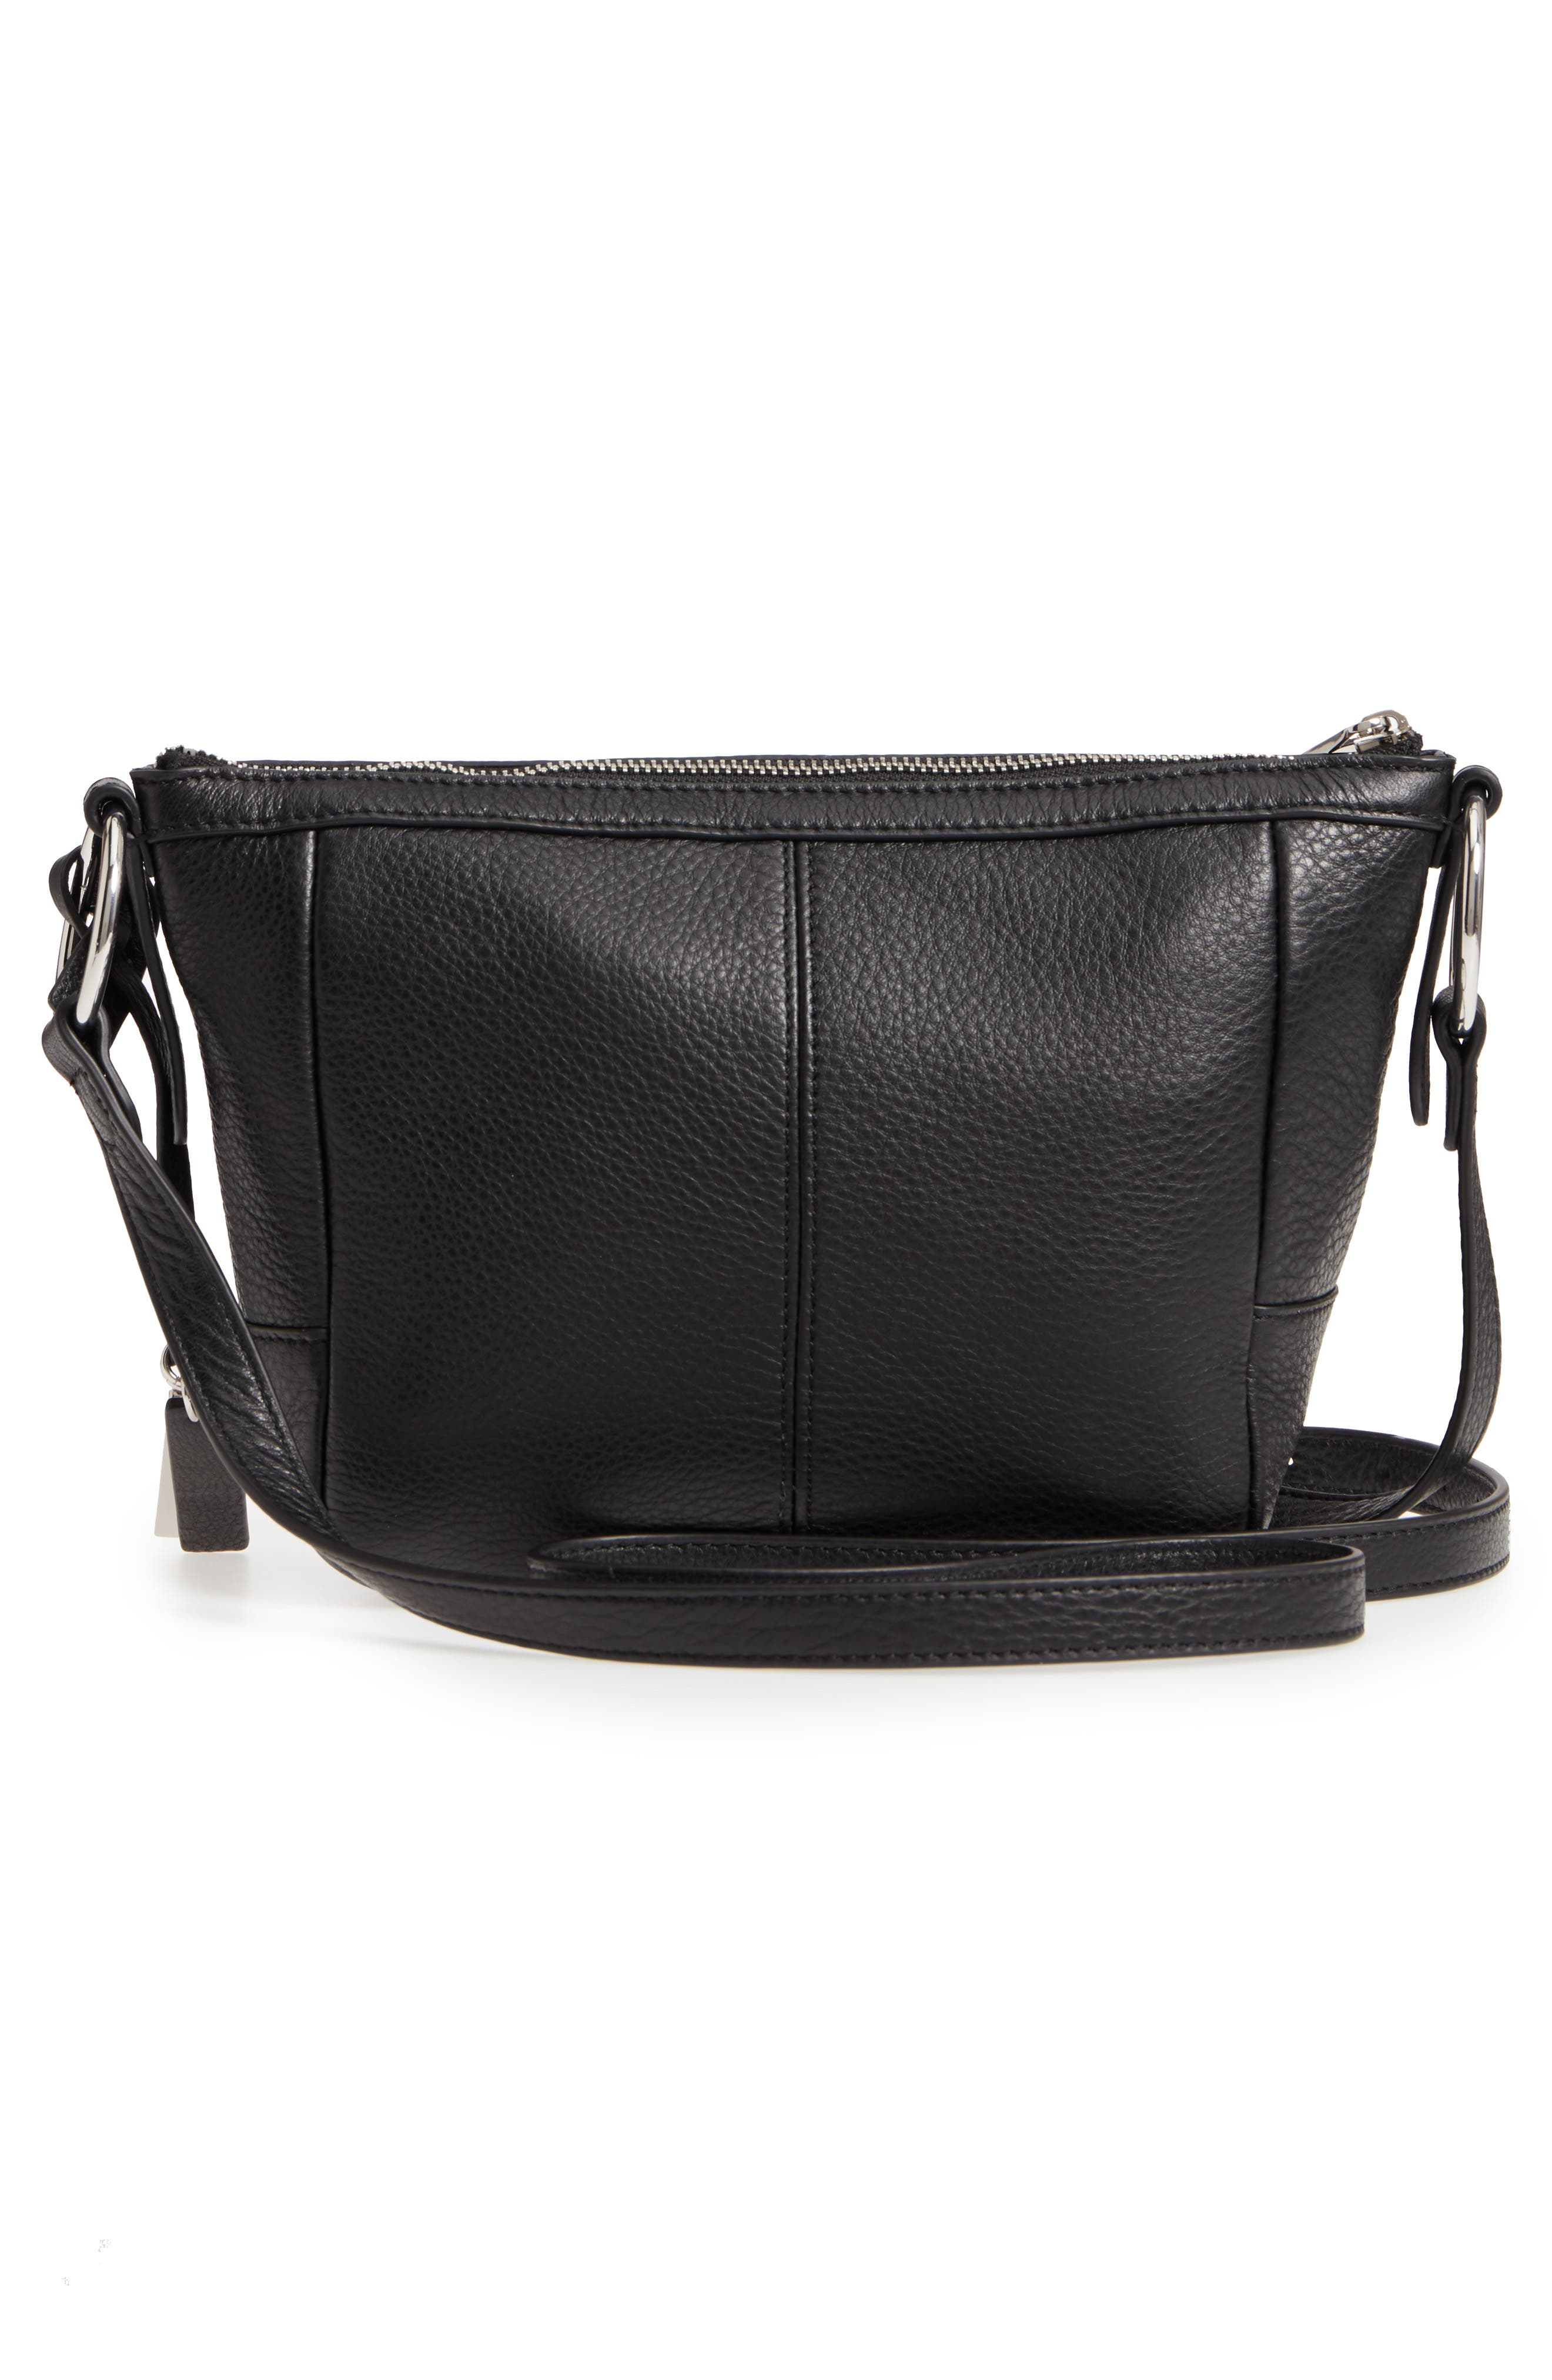 Nikia Crossbody Bag,                             Alternate thumbnail 3, color,                             002